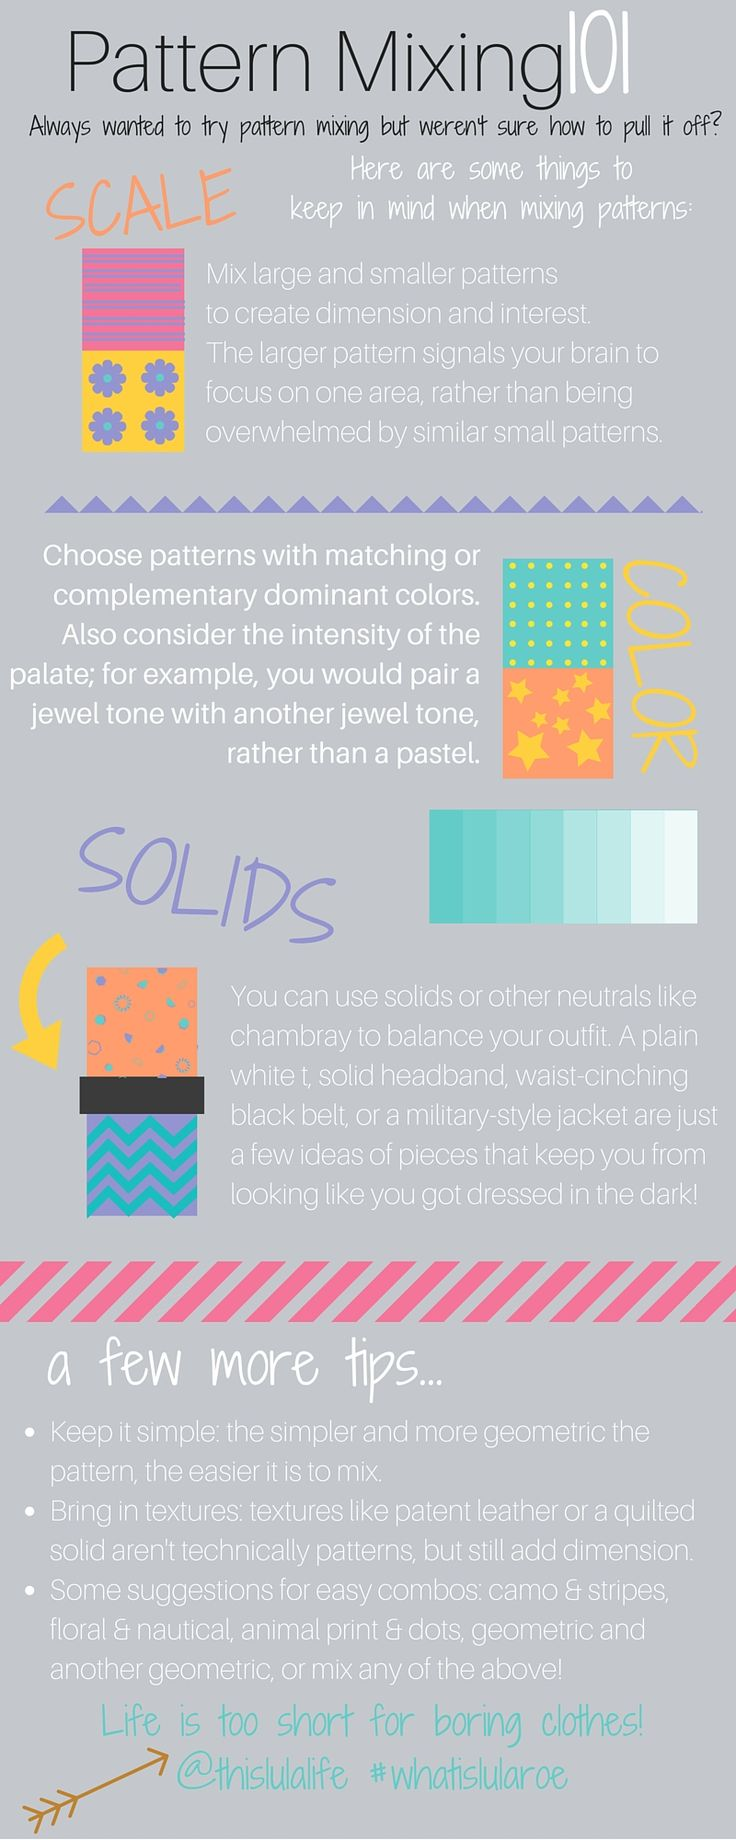 Pattern Mixing 101 - https://www.facebook.com/groups/LuLaRoeKaraStemig/